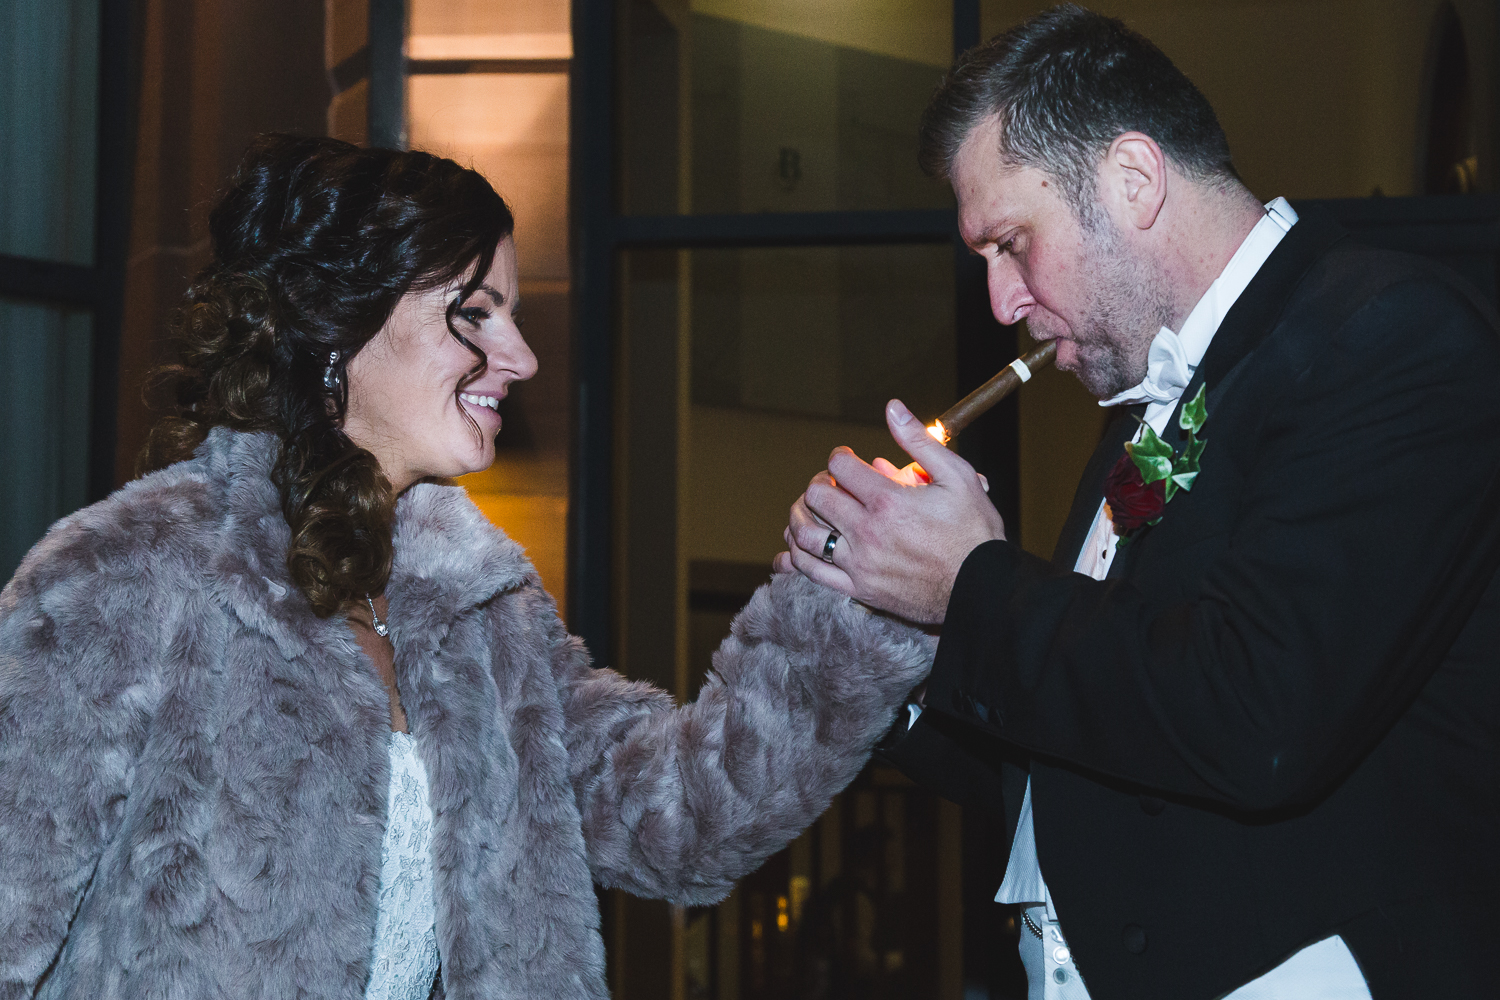 Slieve Donard Wedding Cigars